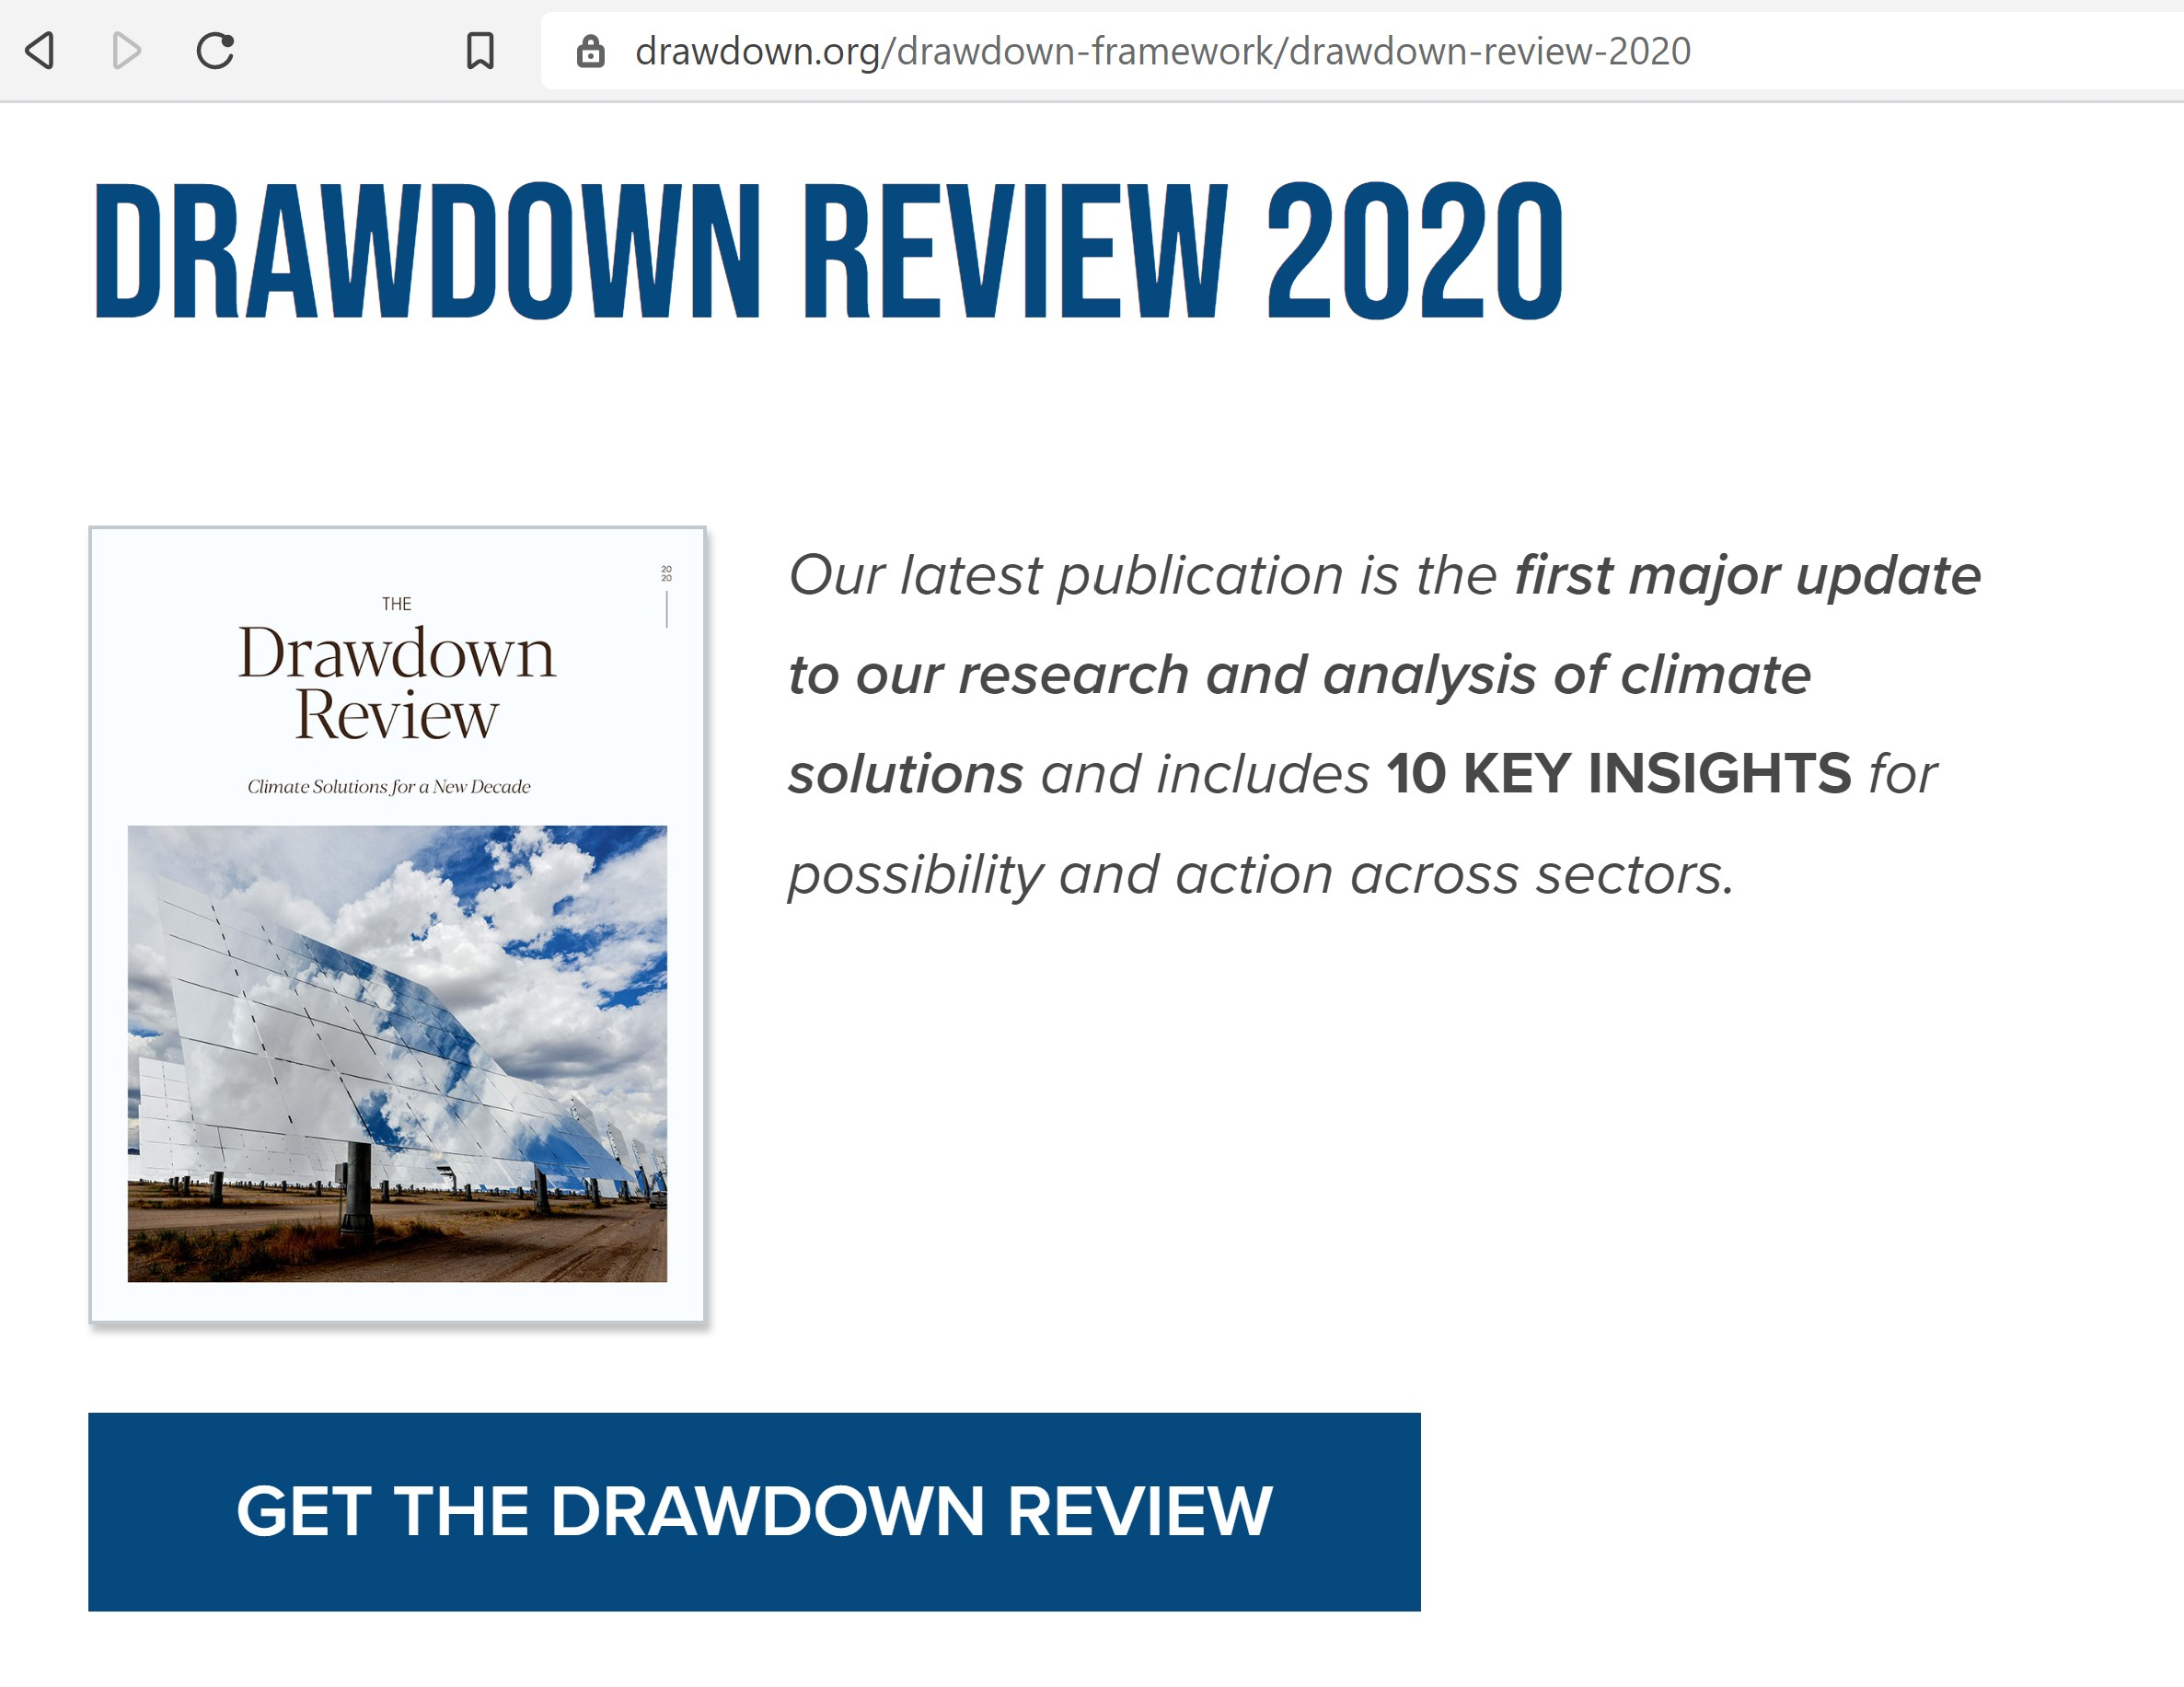 Drawdown 2020 Review